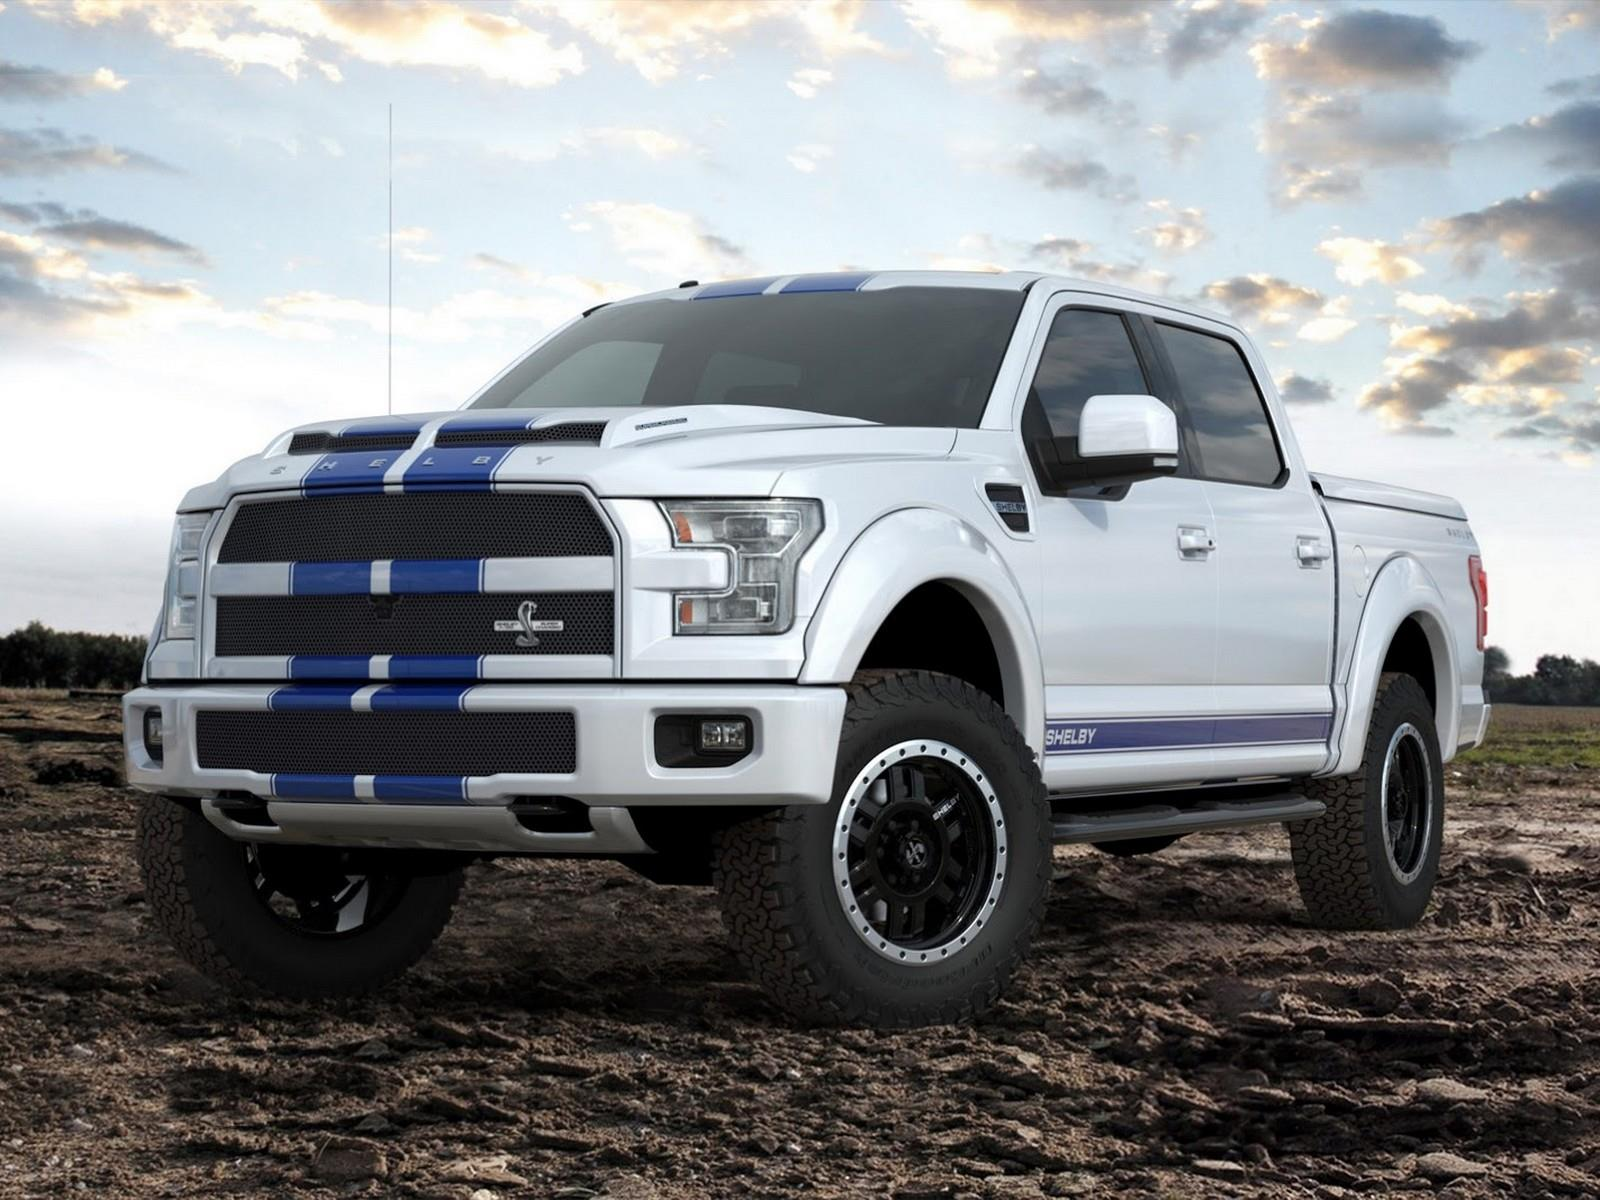 Shelby F150 For Sale >> Shelby F-150, una super pick up de 700 hp - Autocosmos.com